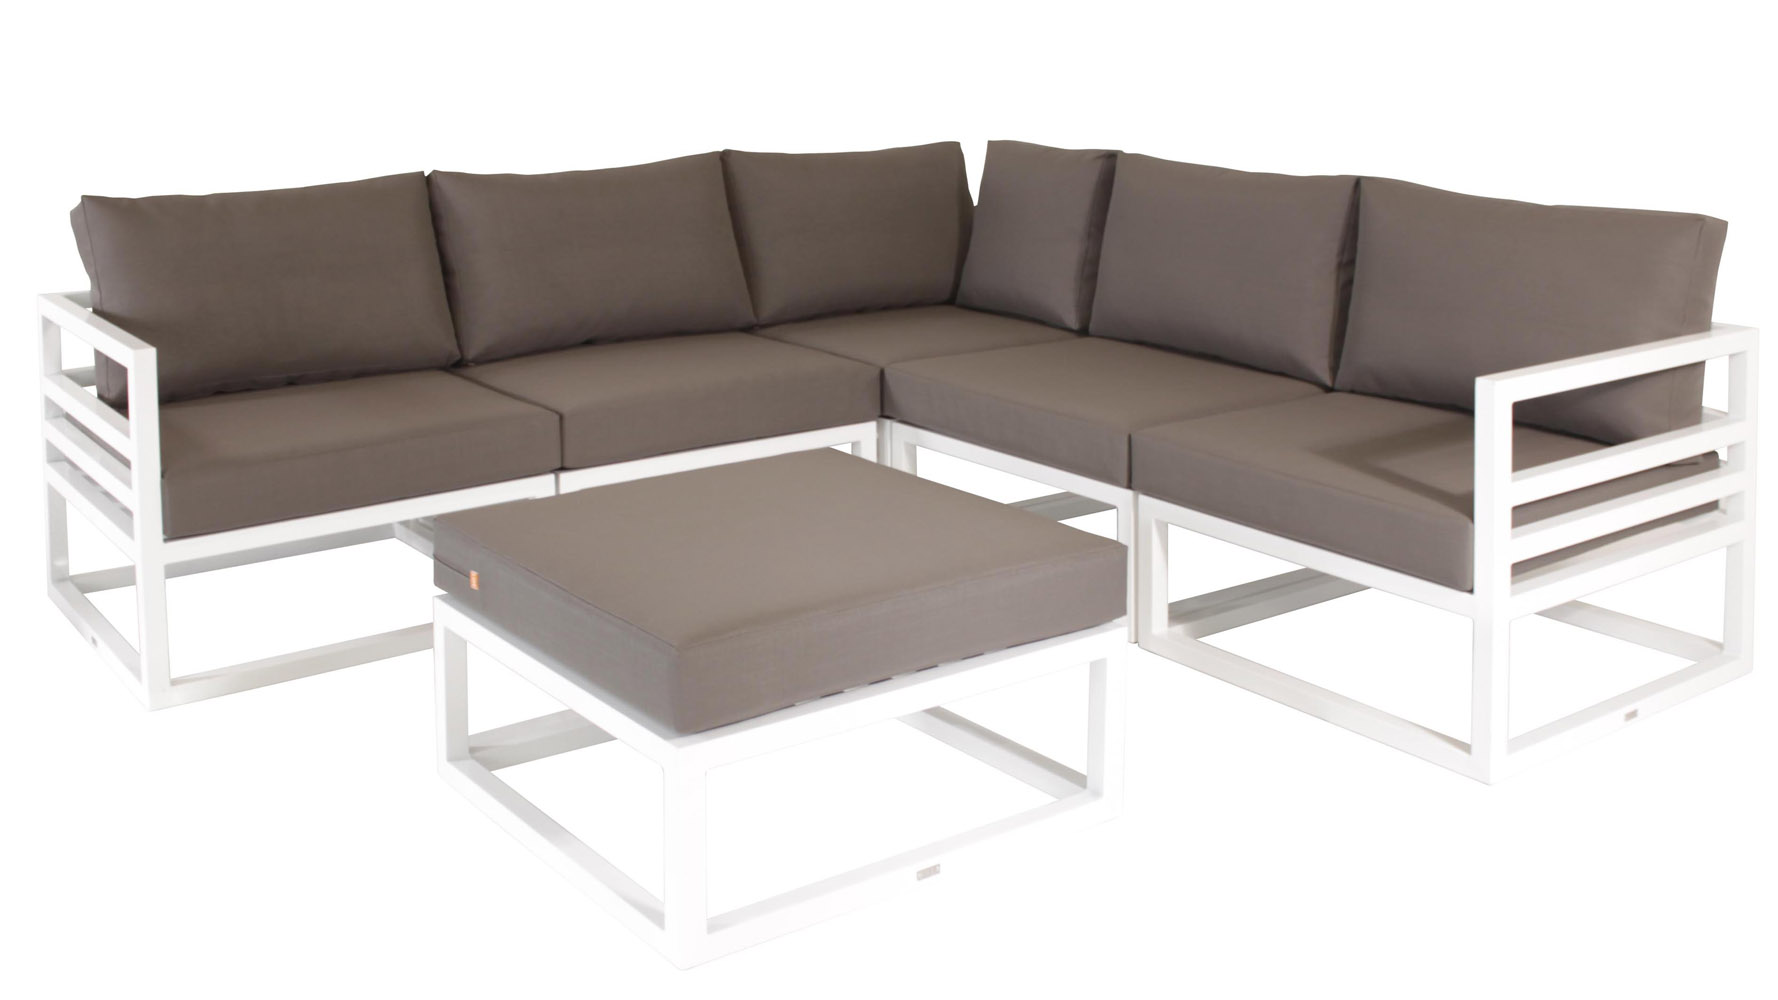 White Aluminum Fabri Outdoor Lounge Set With Taupe Cushions | Zuri Furniture